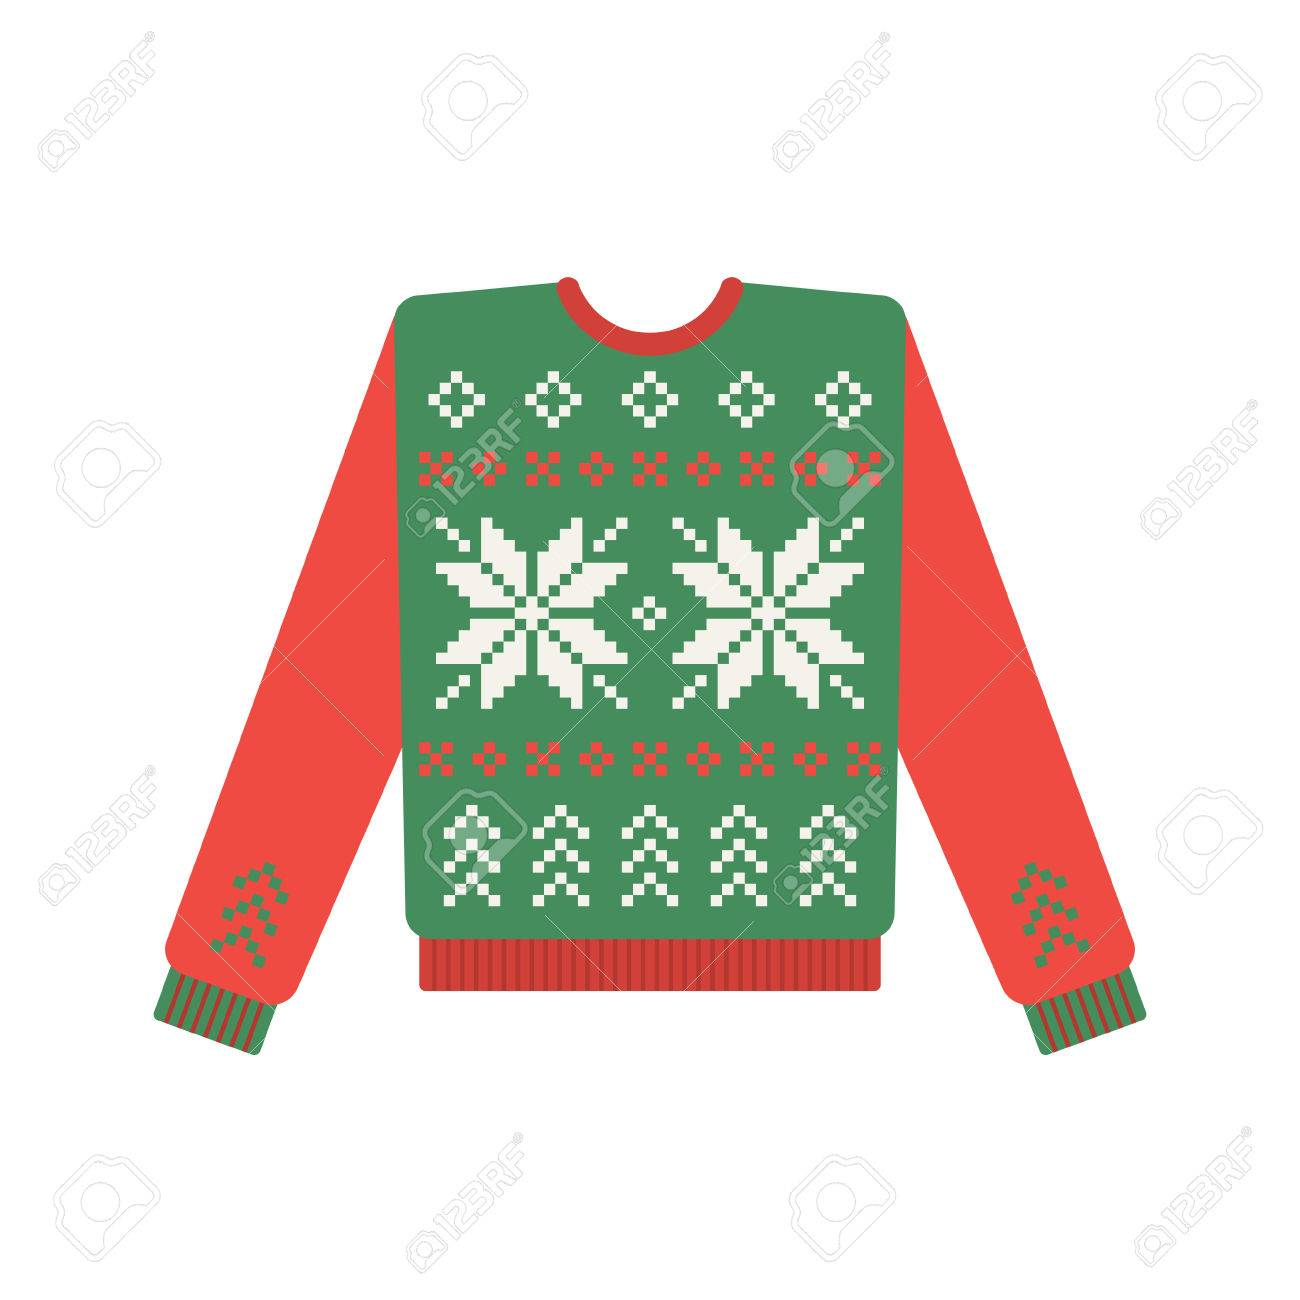 Ugly Christmas Sweater Pattern.Ugly Christmas Sweater With Deer Pattern Vector